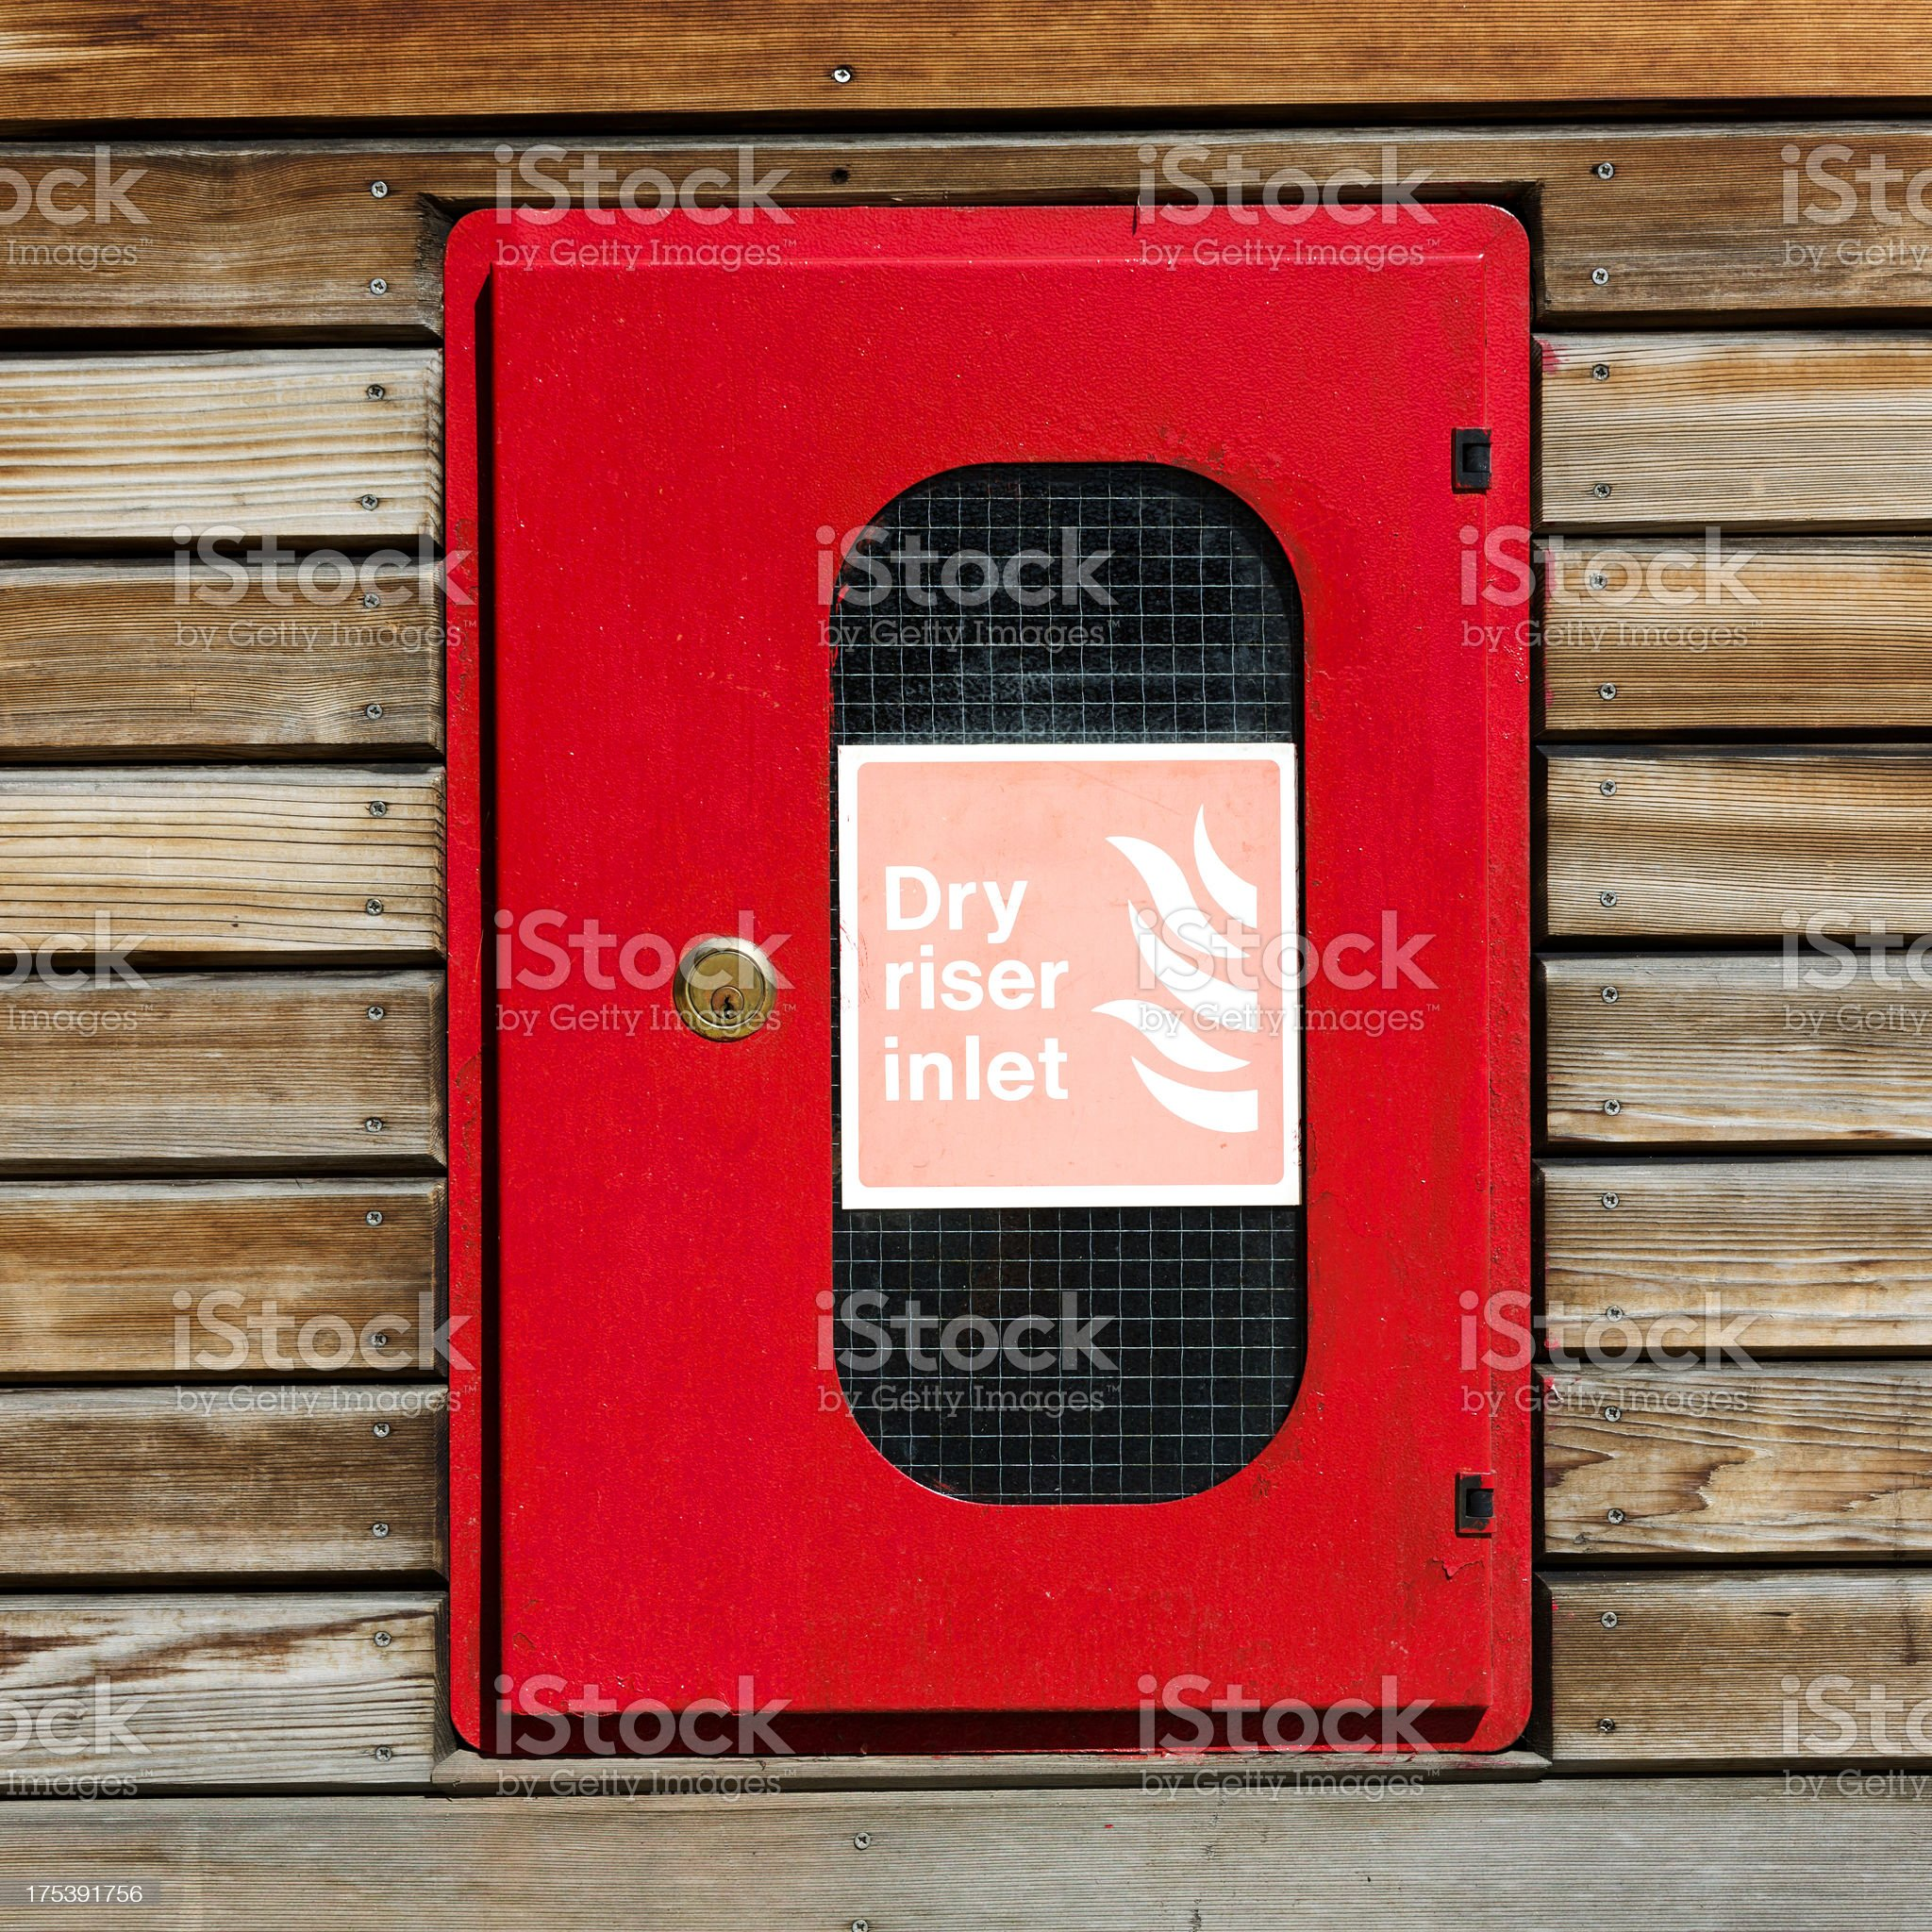 Dry riser inlet royalty-free stock photo